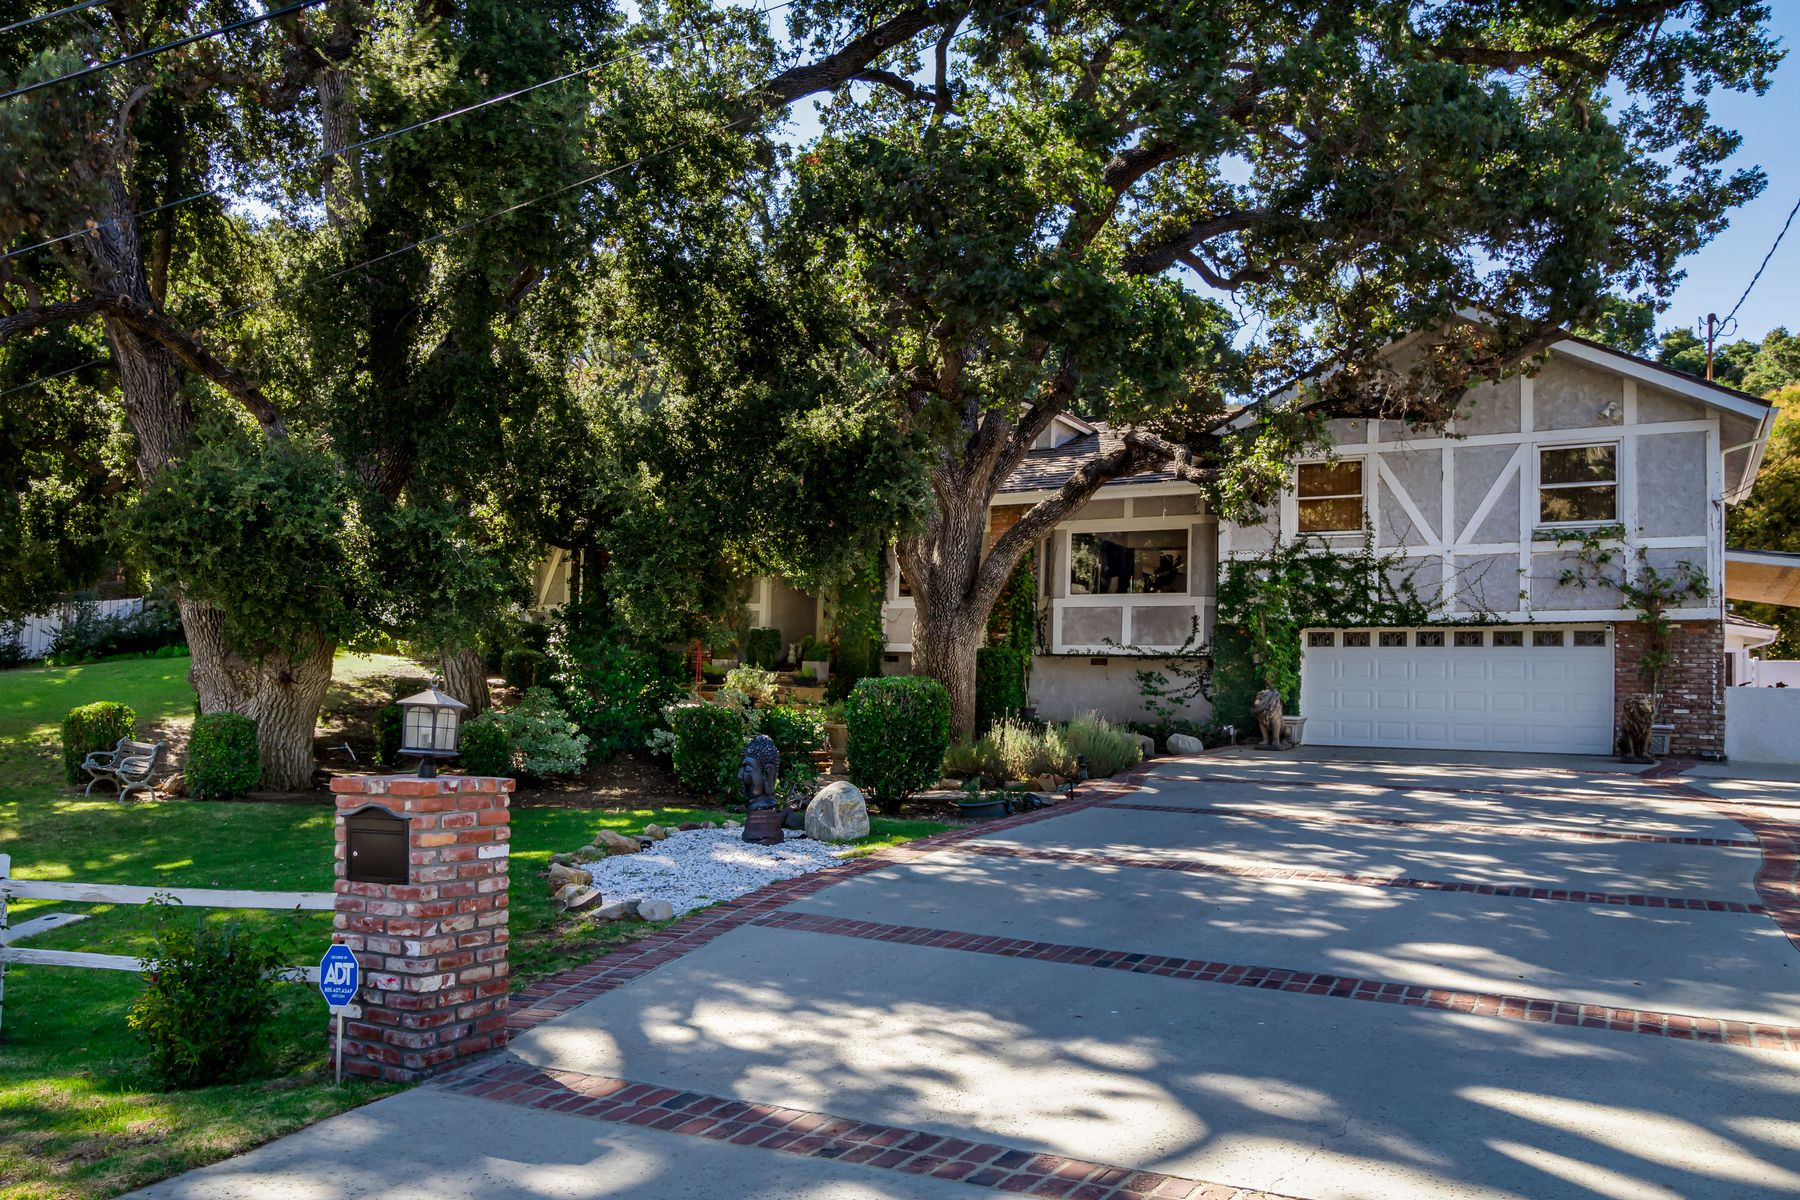 Single Family Homes for Sale at Horse Country Paradise 2323 Stokes Canyon Calabasas, California 91302 United States